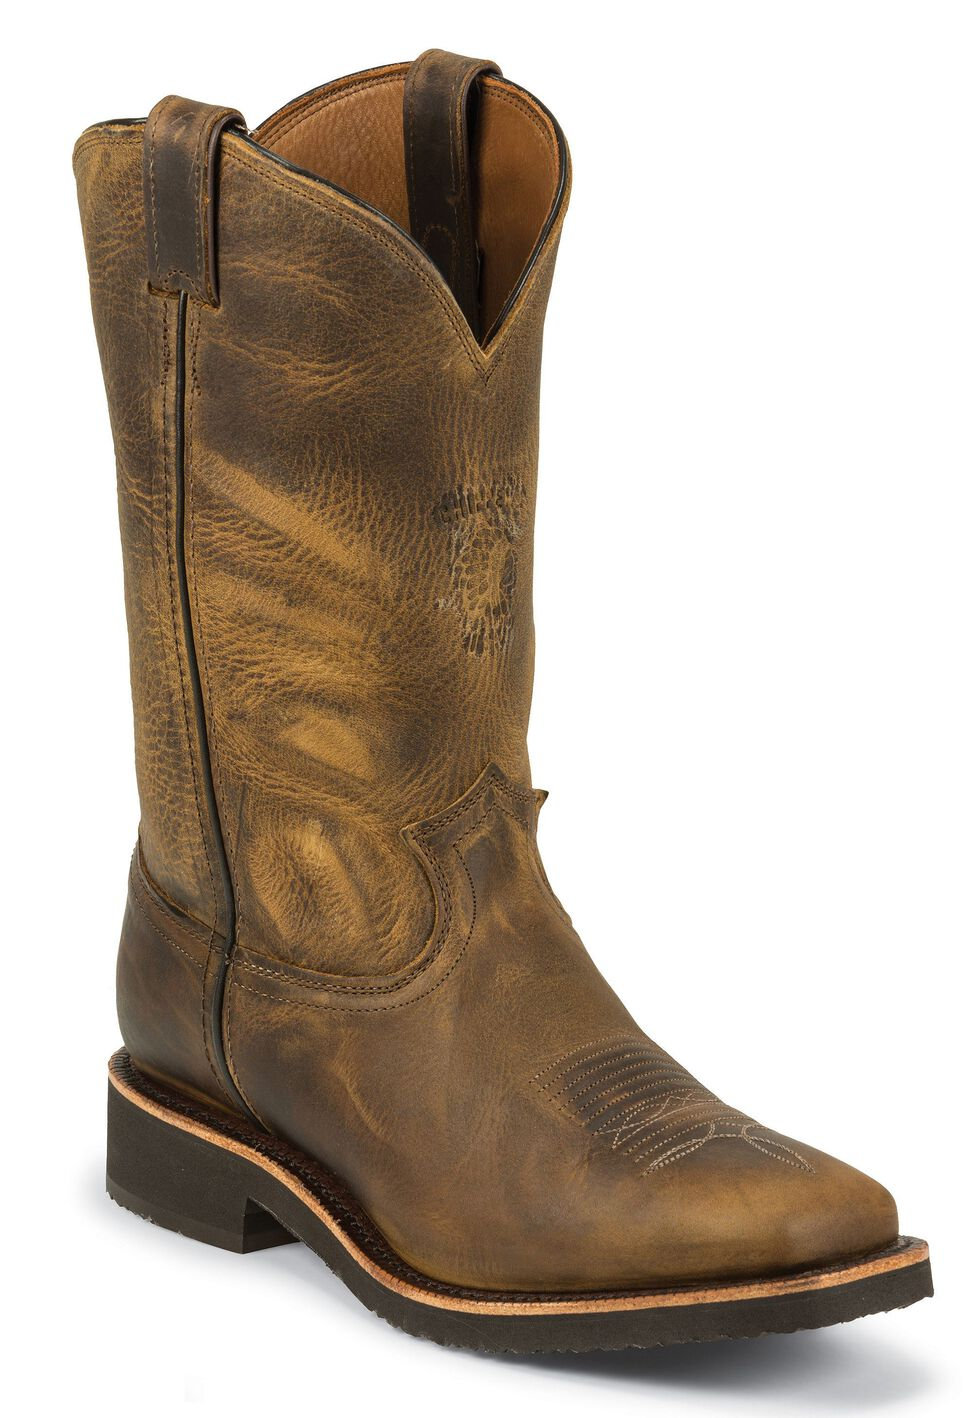 Chippewa Men's Soronto Sand Western Field Boots - Square Toe, Sand, hi-res